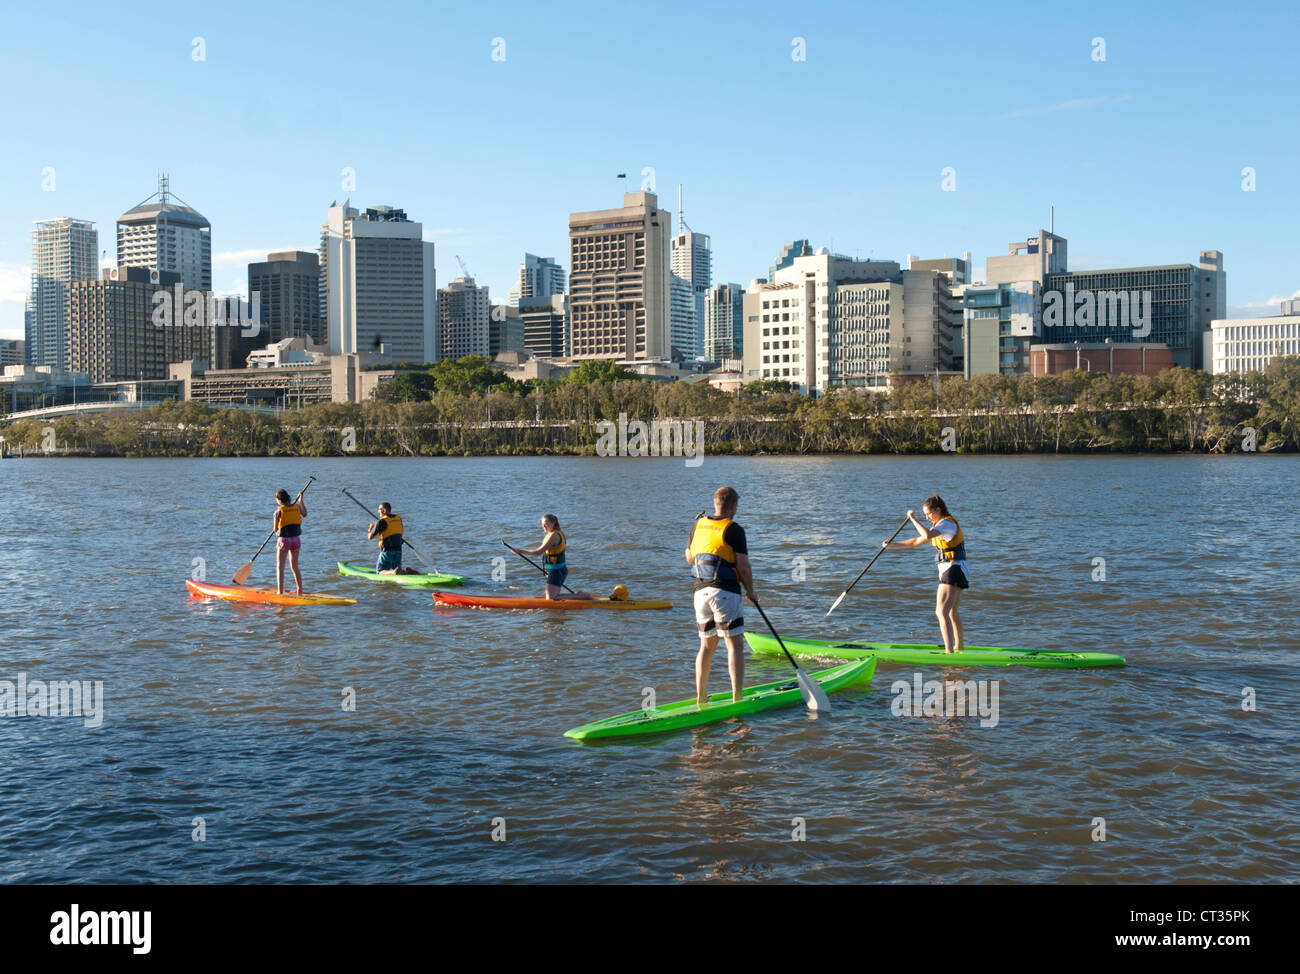 Stand-Up Paddling on Brisbane River with CBD in view, Queensland, Australia - Stock Image